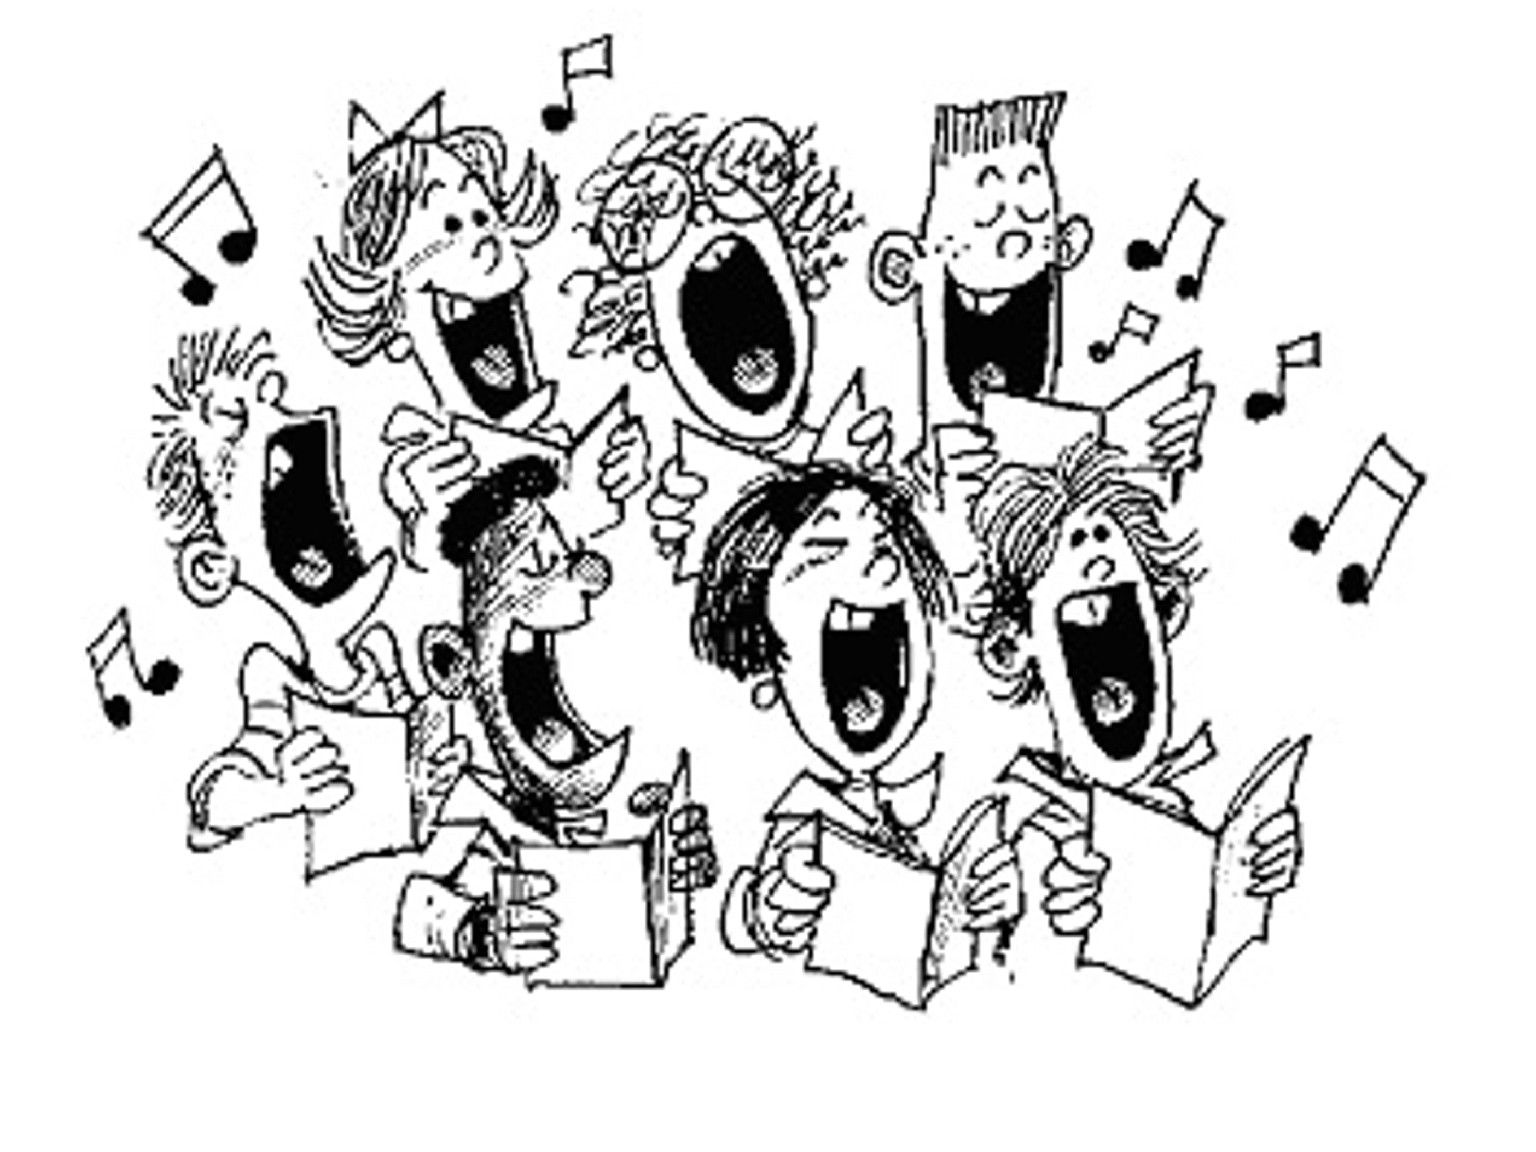 clipart royalty free download I was in for. Choir clipart.